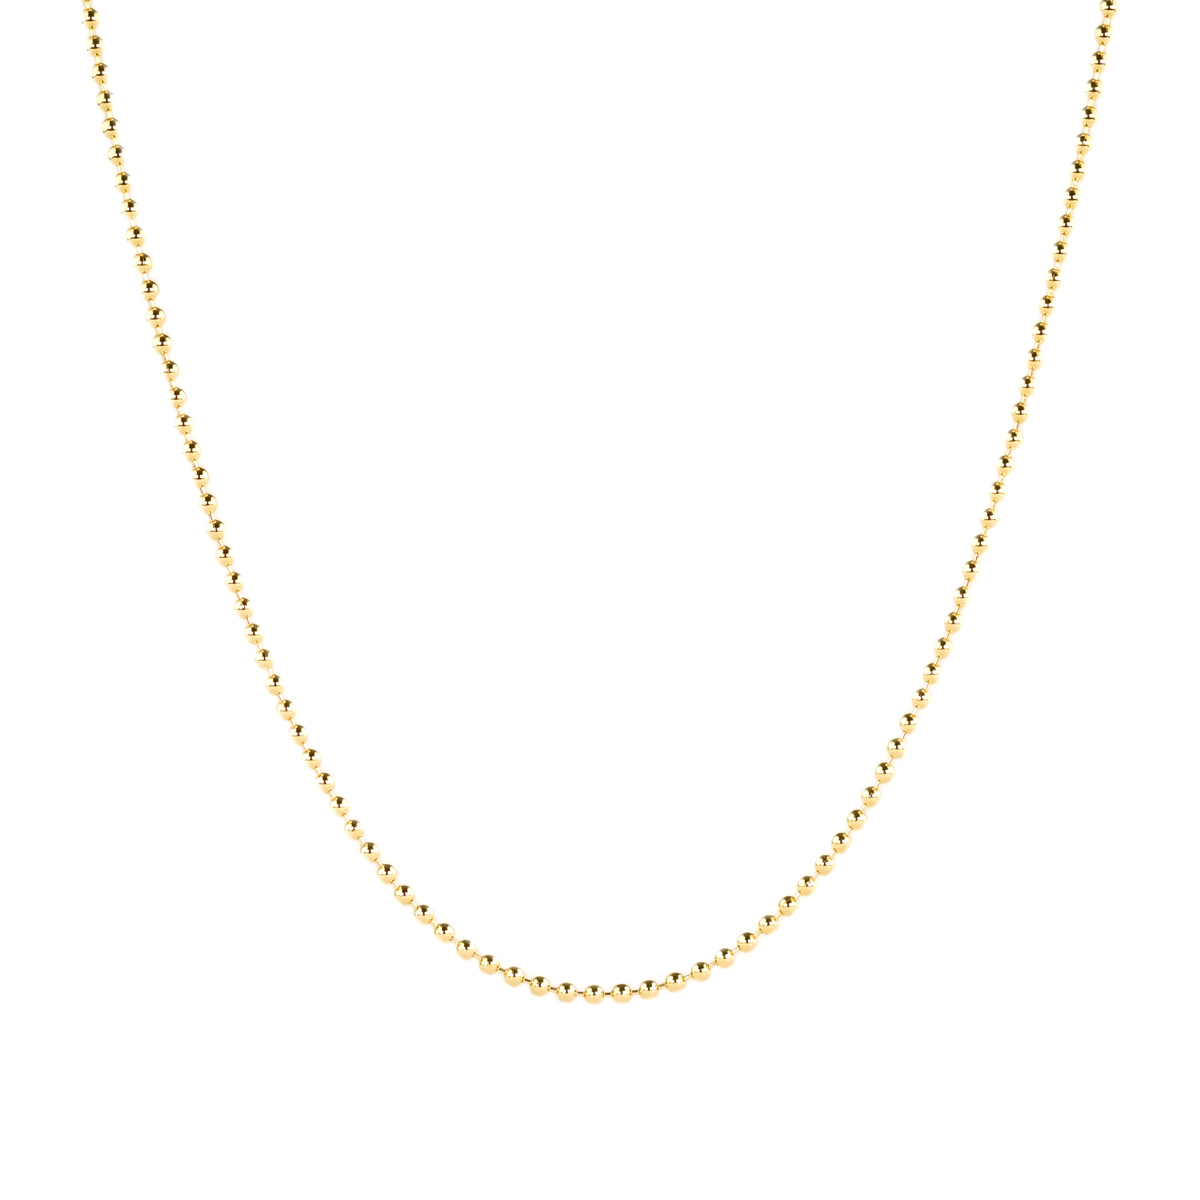 GLOBE CHAIN GOLD in the group SHOP at EMMA ISRAELSSON (chain026)